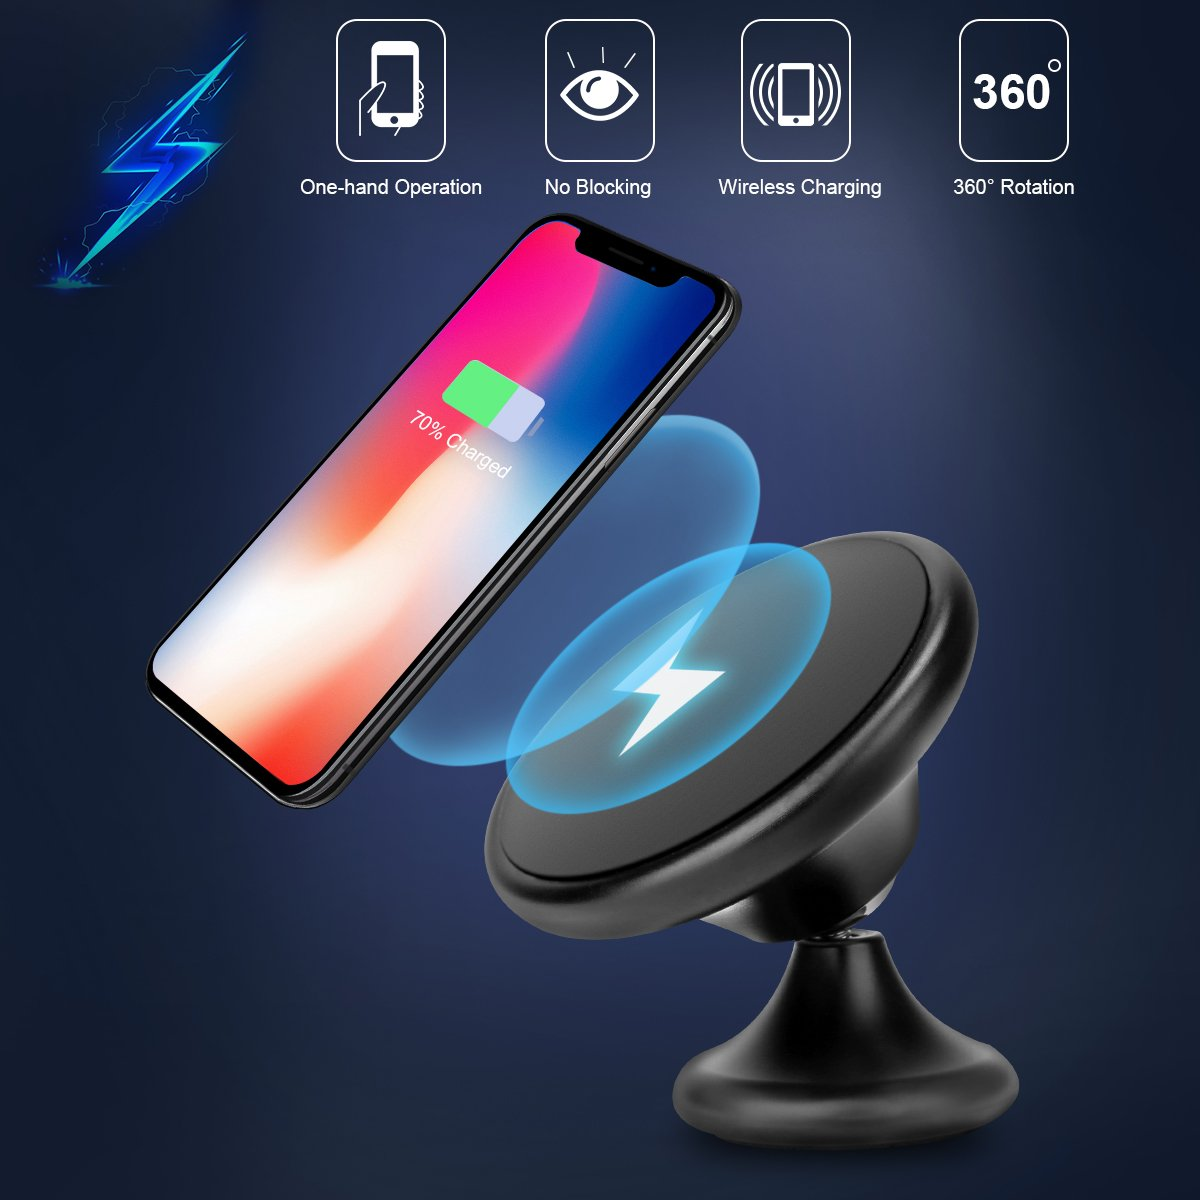 Wireless Car Charger, Fast Wireless Charging Car Mount Phone Holder 10W Charge for Samsung Galaxy S9 Plus S8 Plus S7 Edge Note 8 5 Charger Car Phone Mount 7.5W for iPhone X 8 Plus (Black)